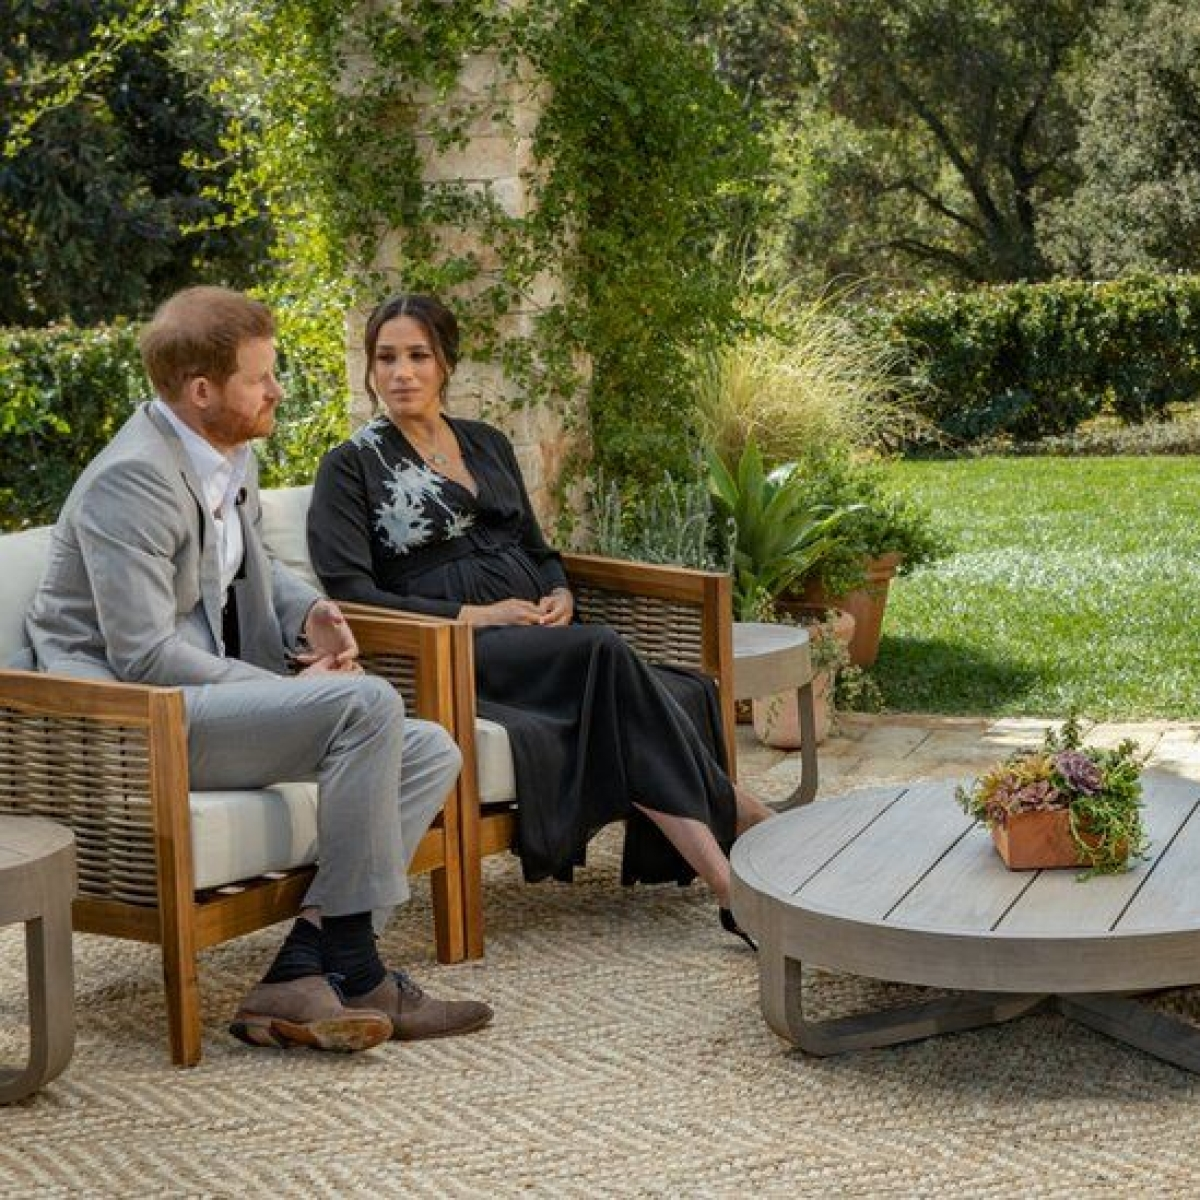 Meghan Markle reveals the stress of royal life; claims son Archie was denied title of prince because he is mixed-race